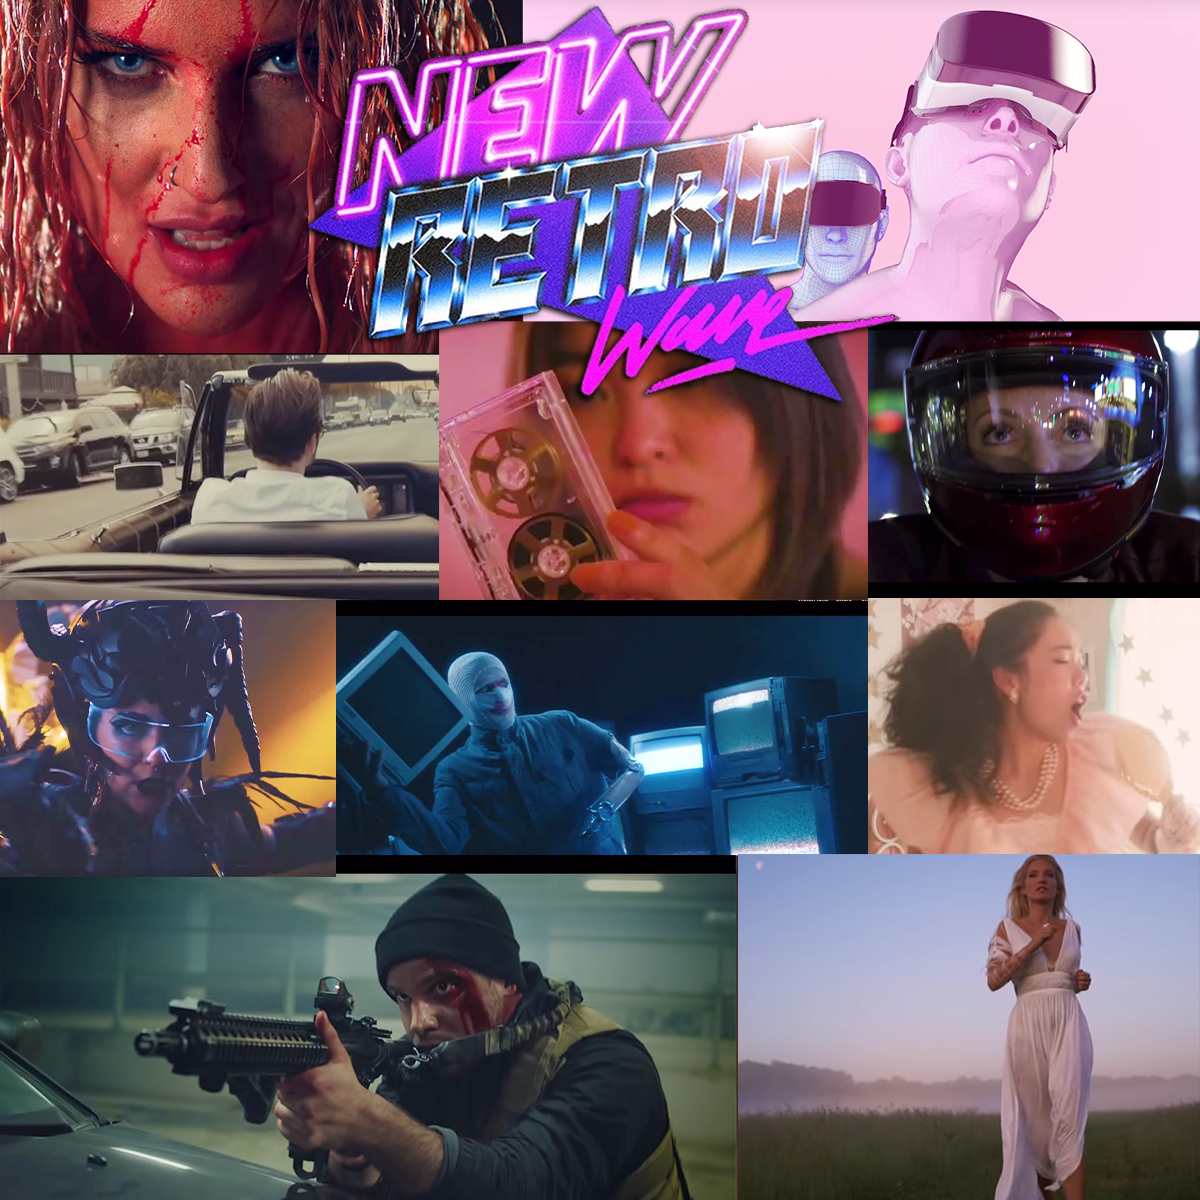 Top 10 Music Videos 2018 - Top Ten Retrowave Music Videos of 2018